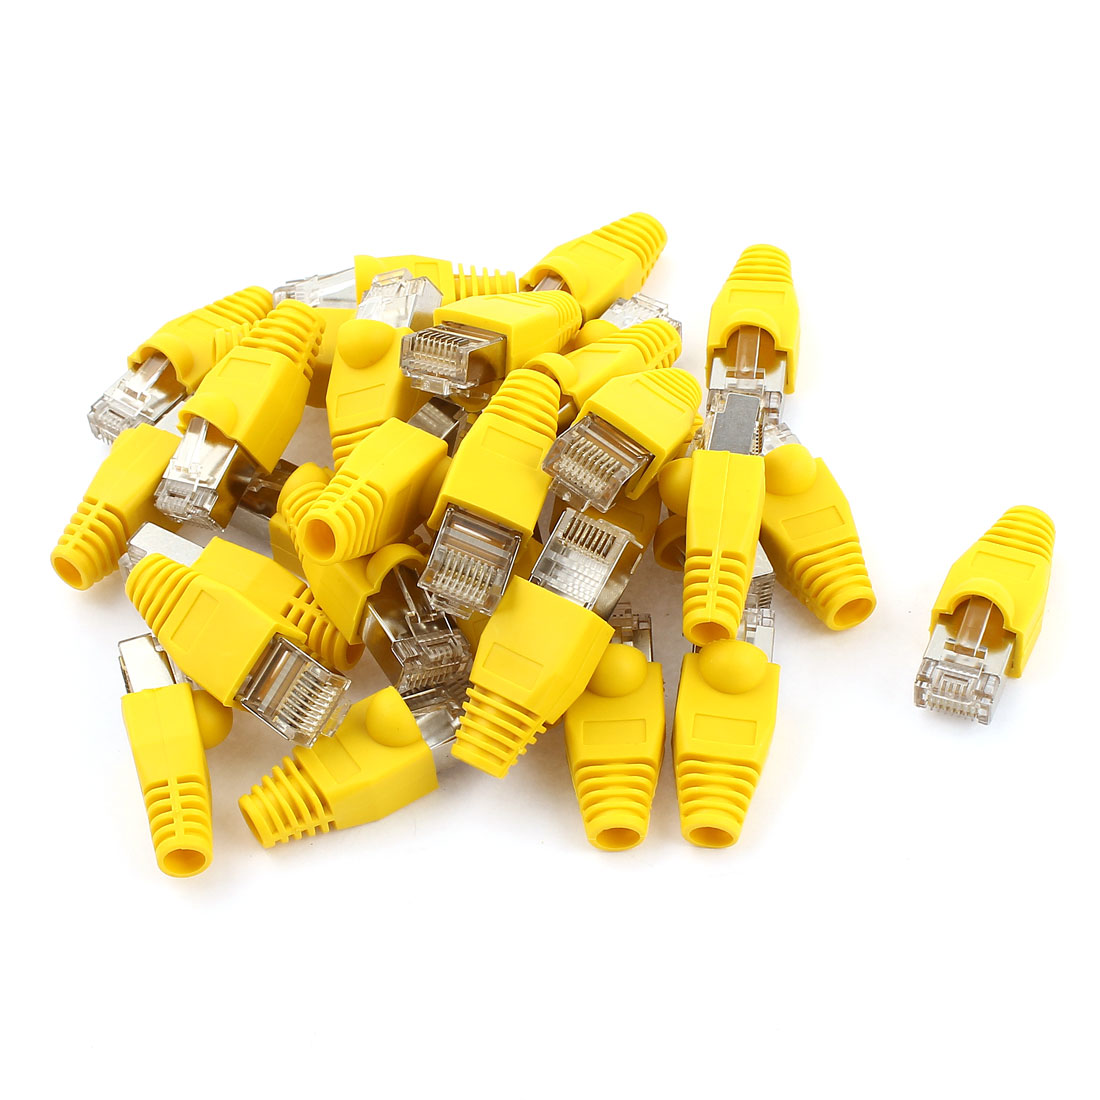 30 Pcs Gold Plated RJ45 Modular Adapter Yellow Boots Protectors Cover Set